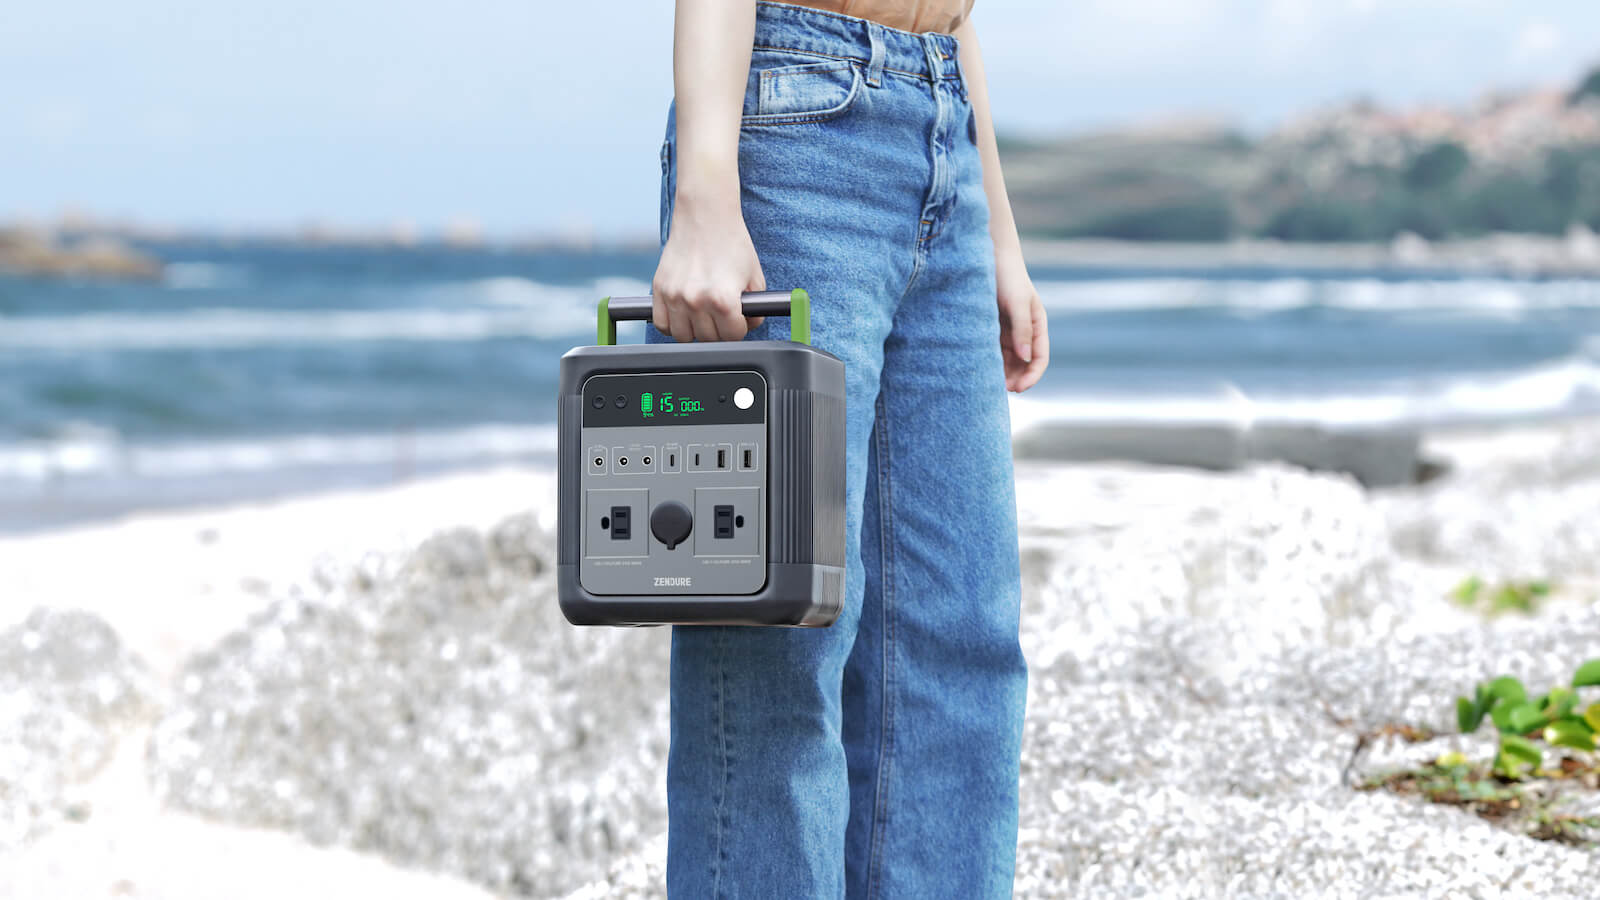 Zendure SuperBase 500 518 Wh powerstation is designed for high-powered devices